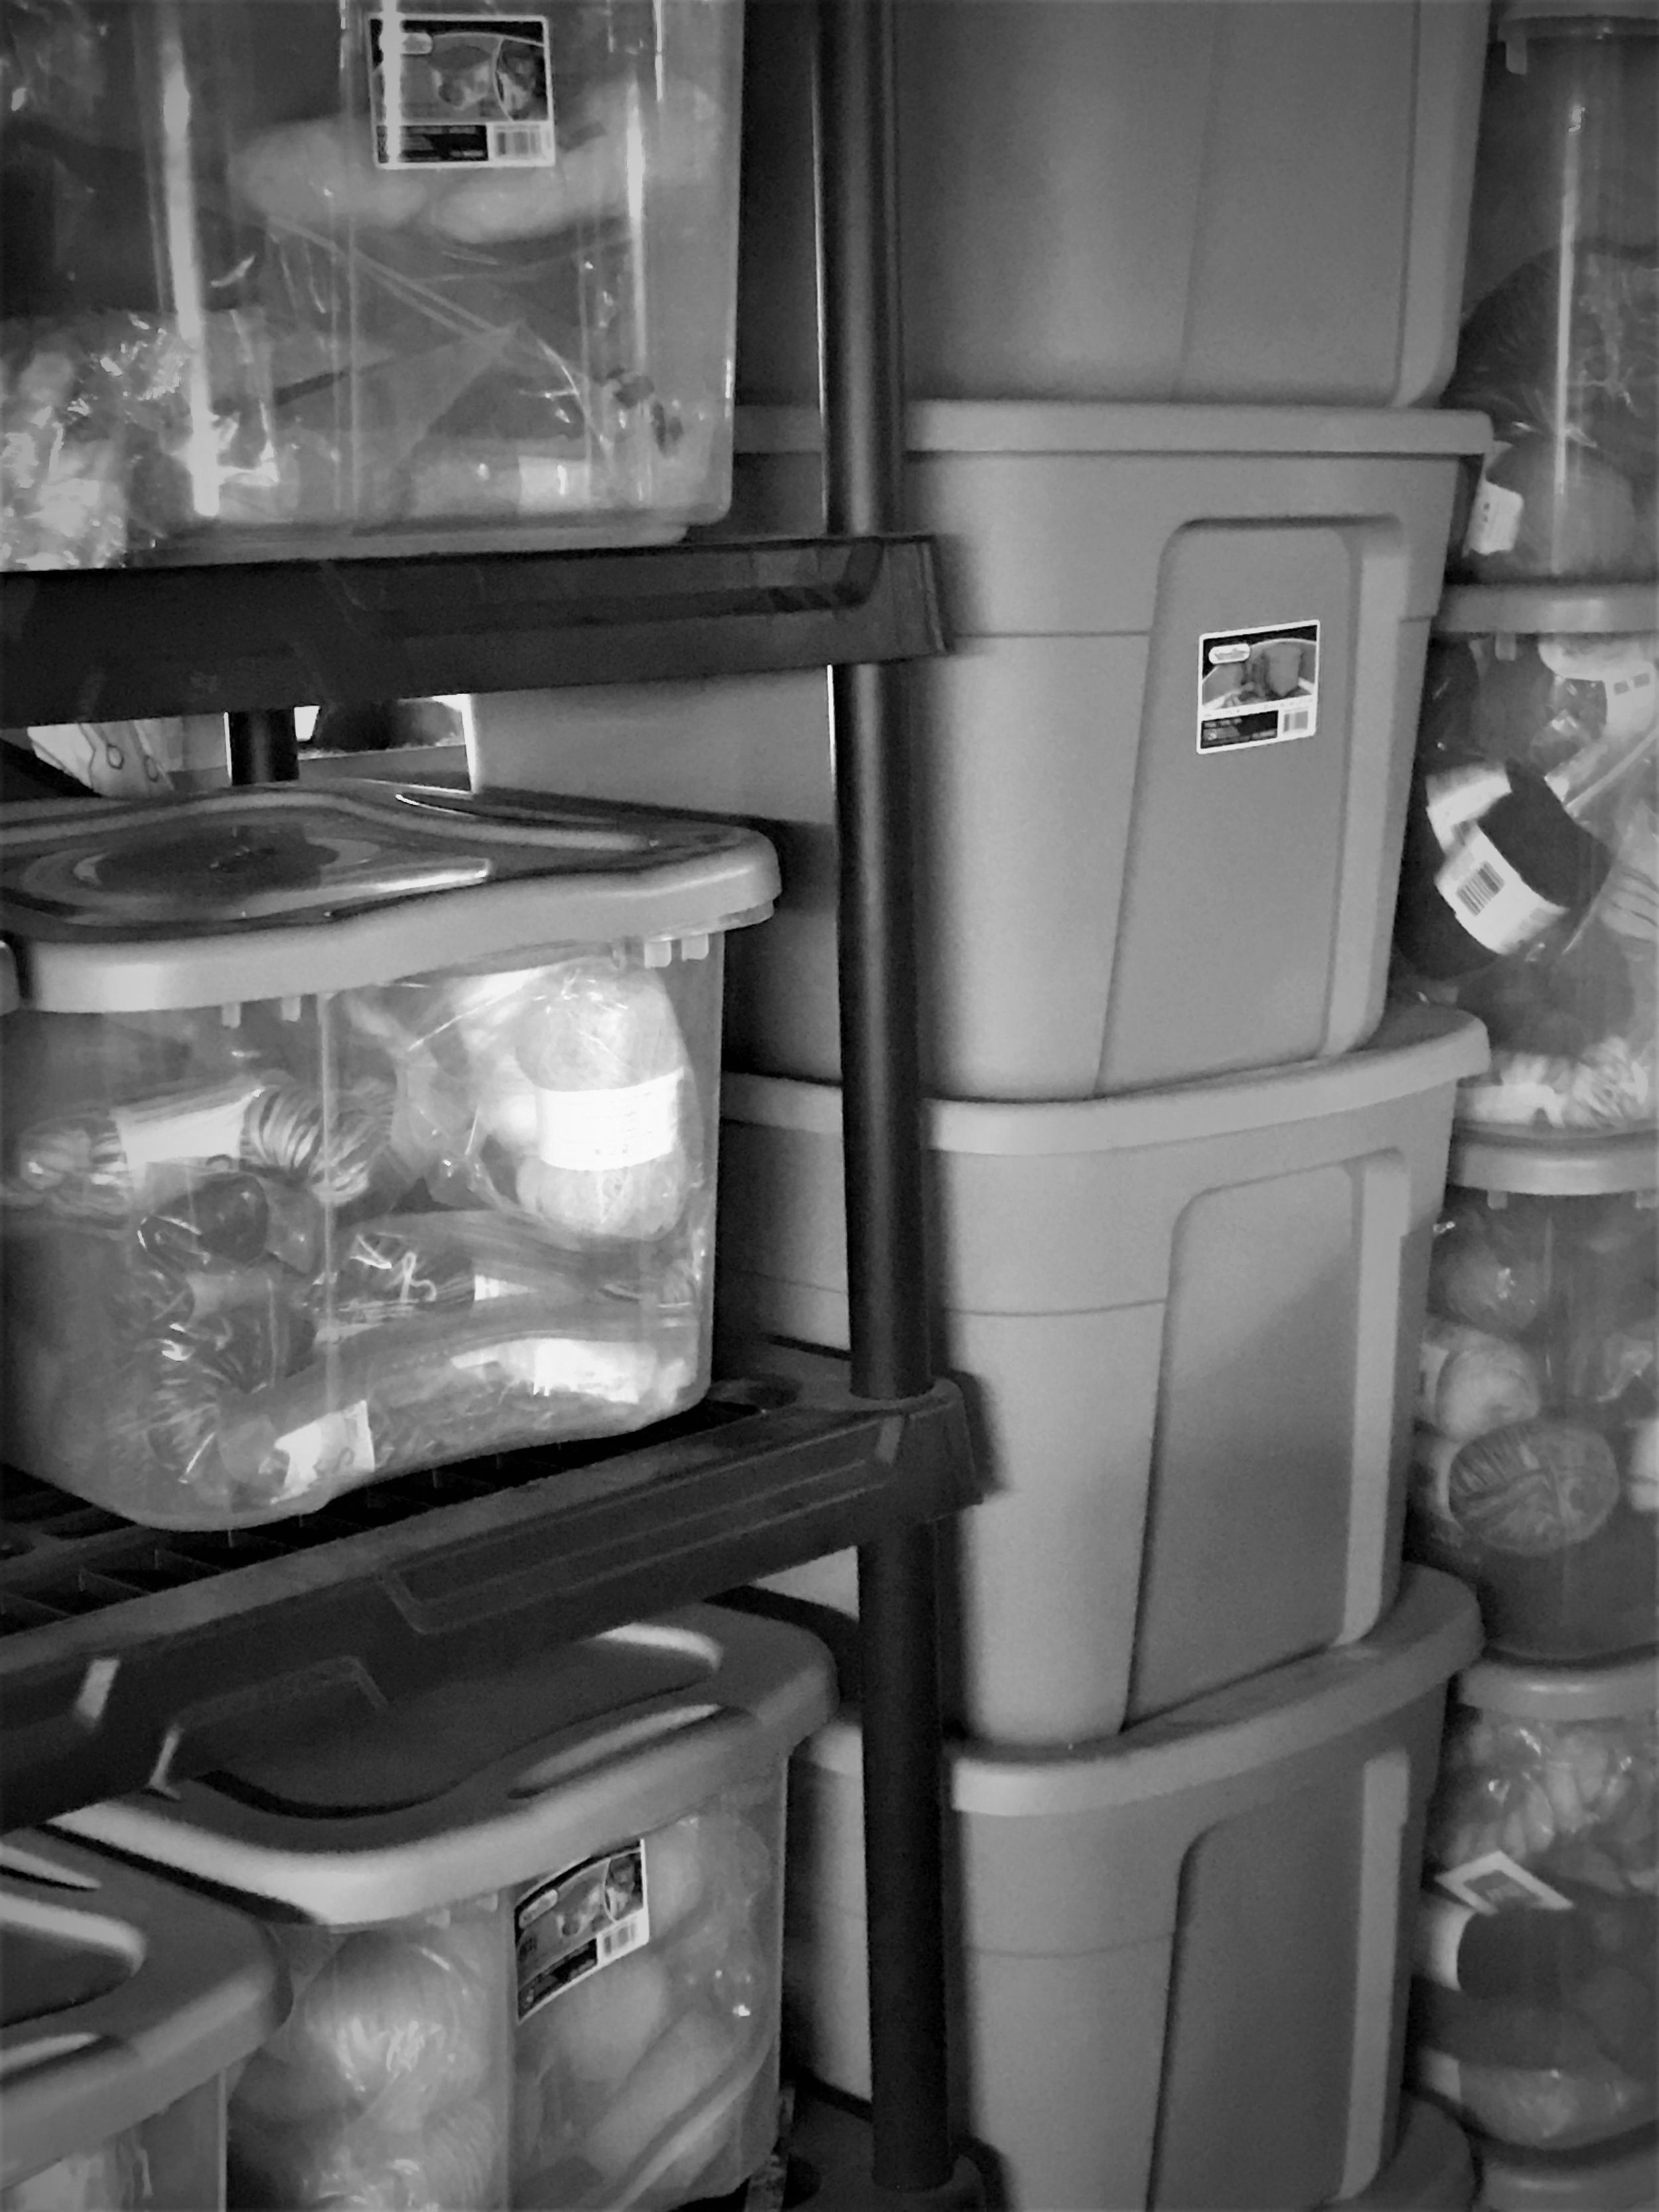 Some of my stash in action. I keep it in plastic bags inside of Sterilite containers with cedar rings in every container, as well as mothballs and cedar all over the shelving units to stave off moth infestation. I keep the bulk of my stash in my basement.